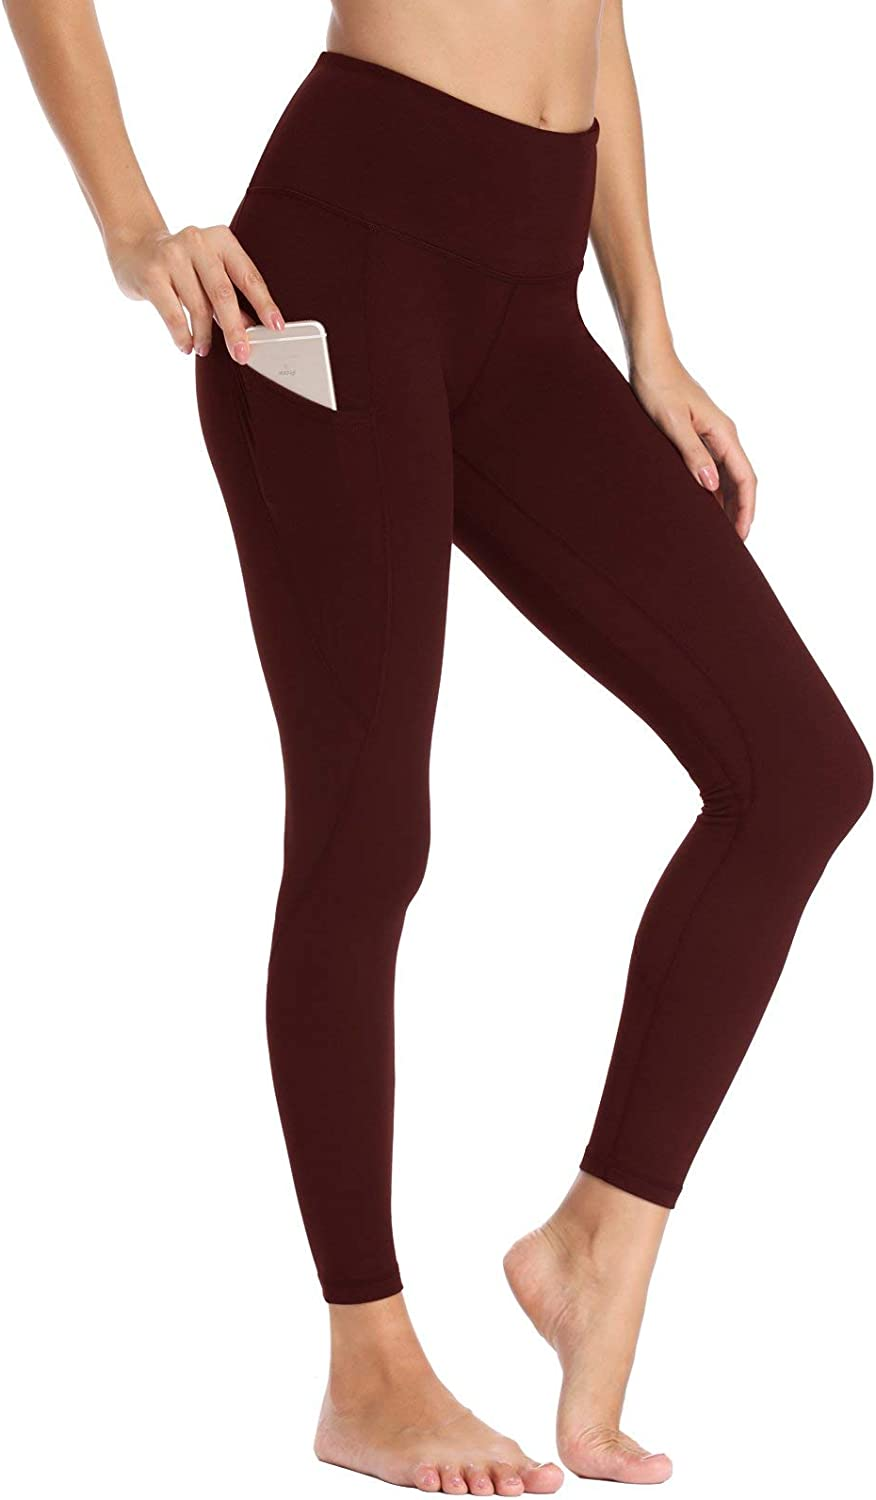 Willit Womens Fleece Lined Leggings Winter Yoga Running Leggings with Pockets High Waisted Pants Workout Thermal Tights